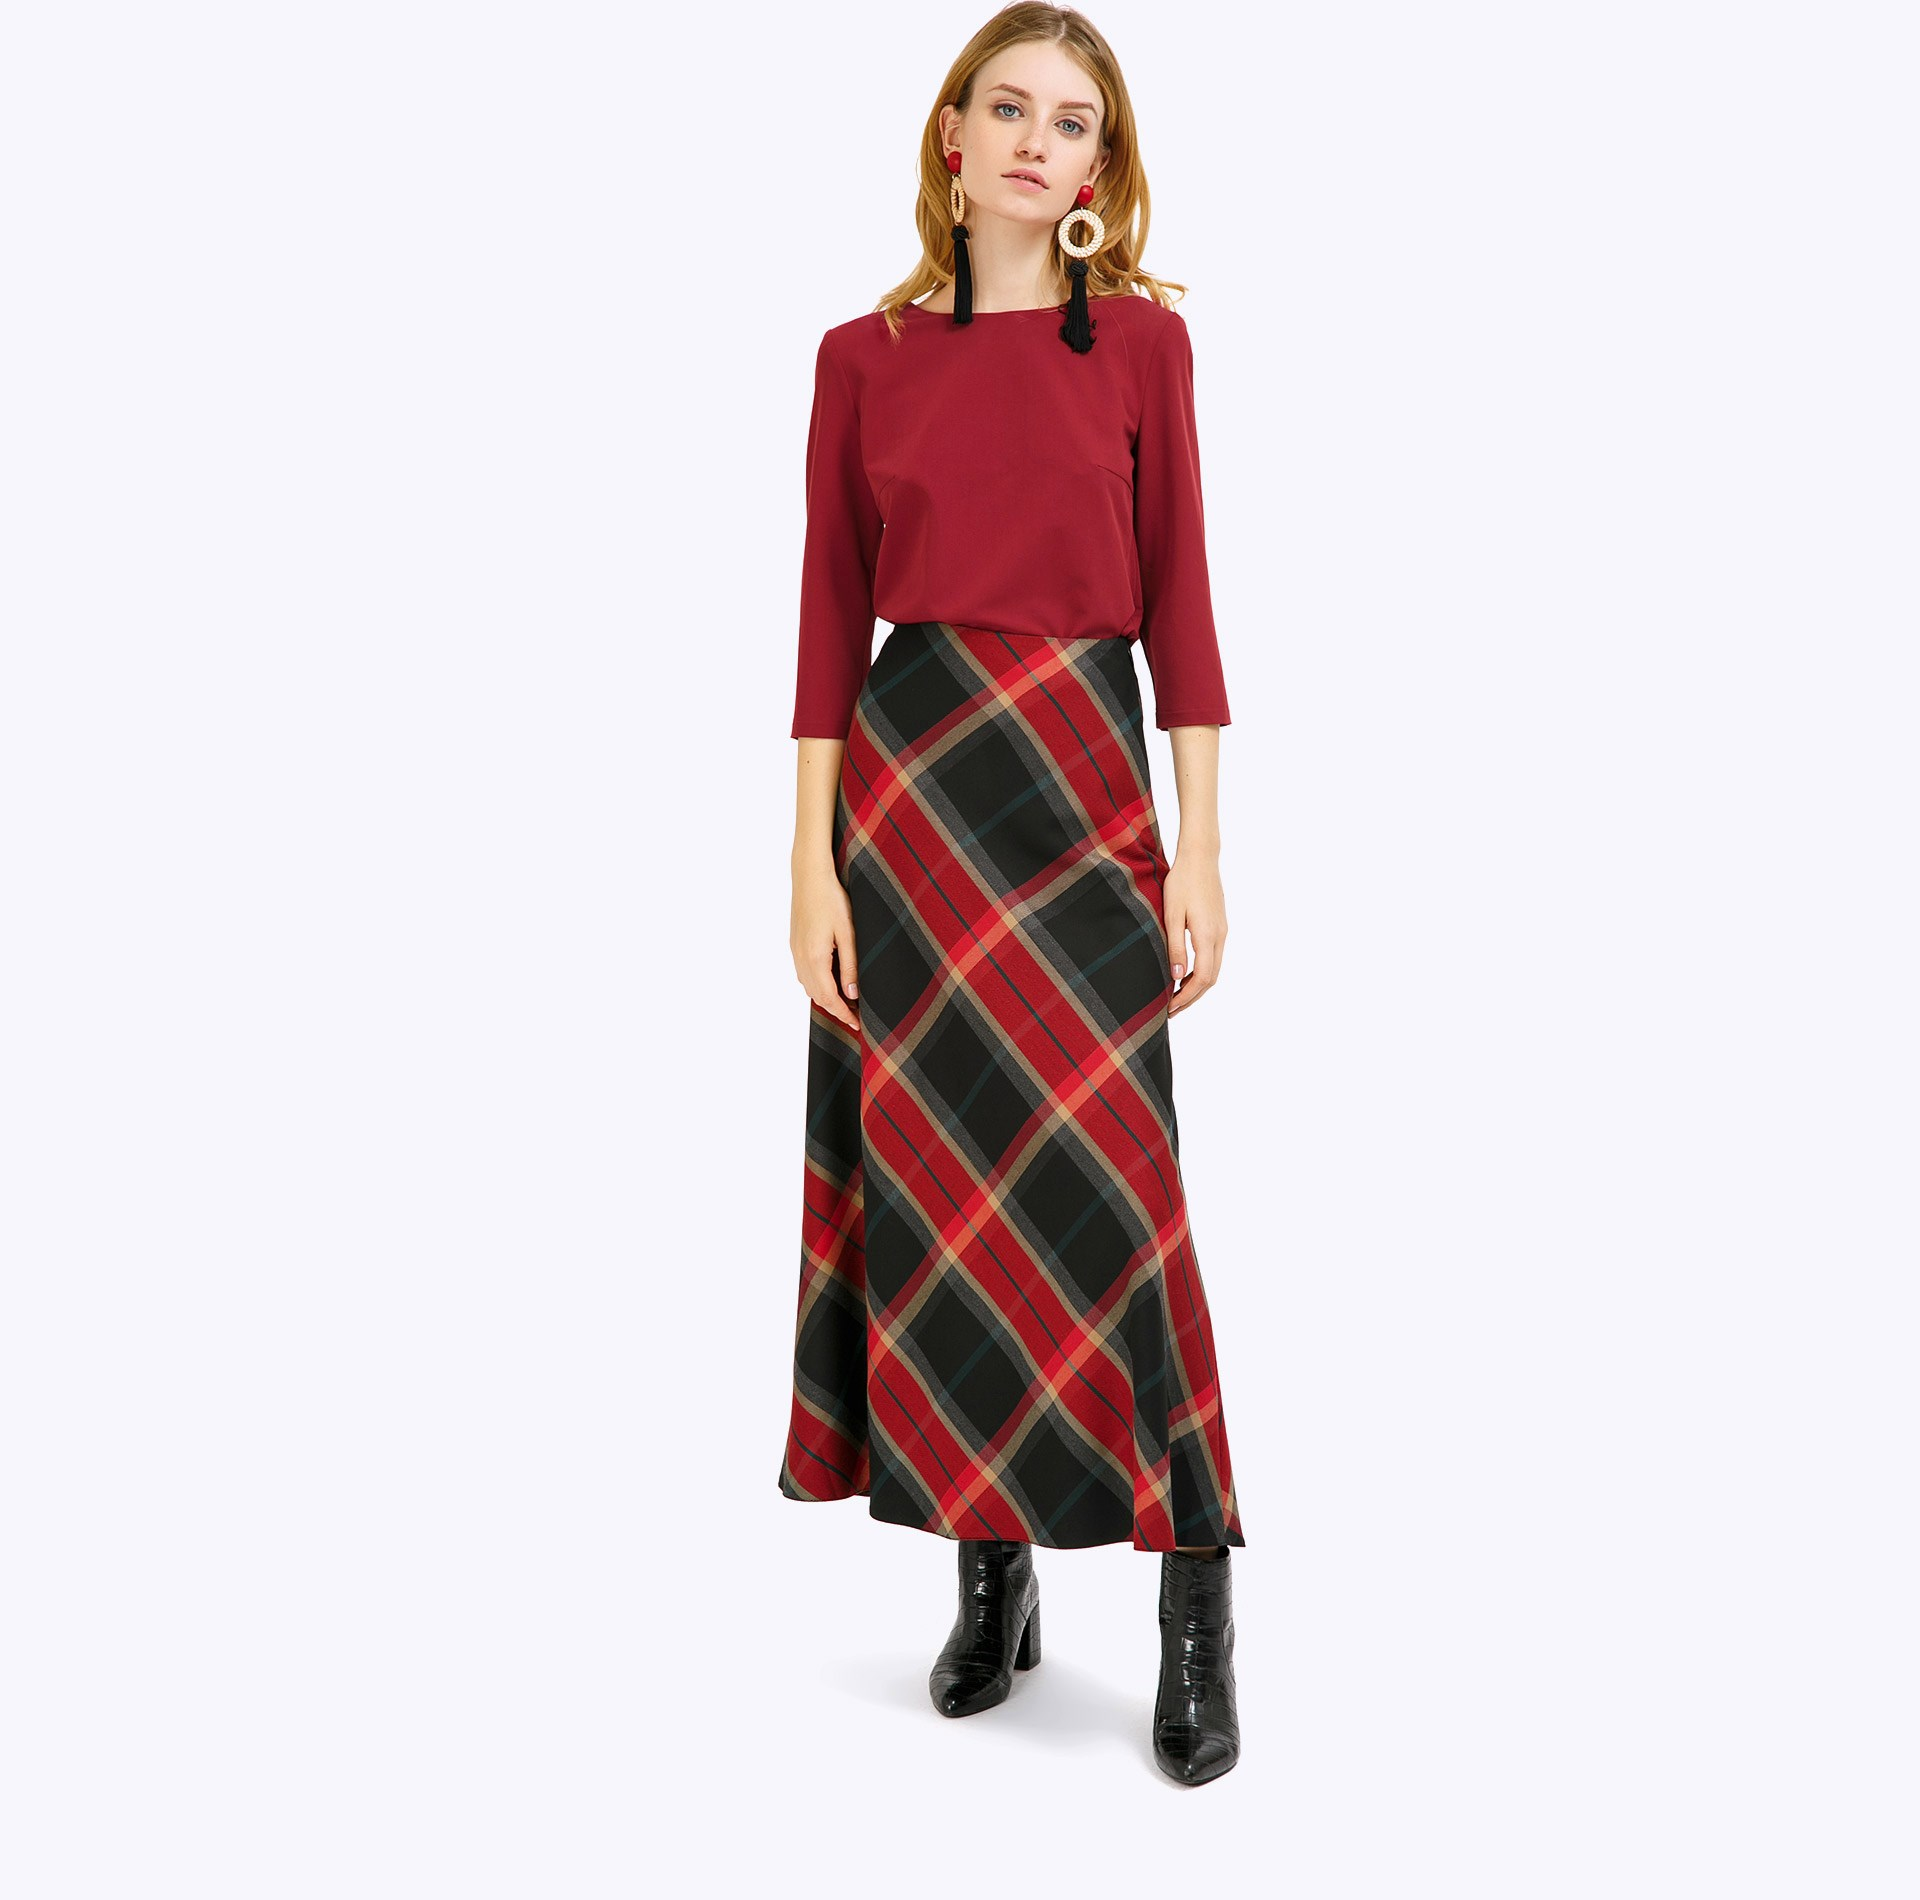 Skirt A-line plaid glen plaid zip back skirt